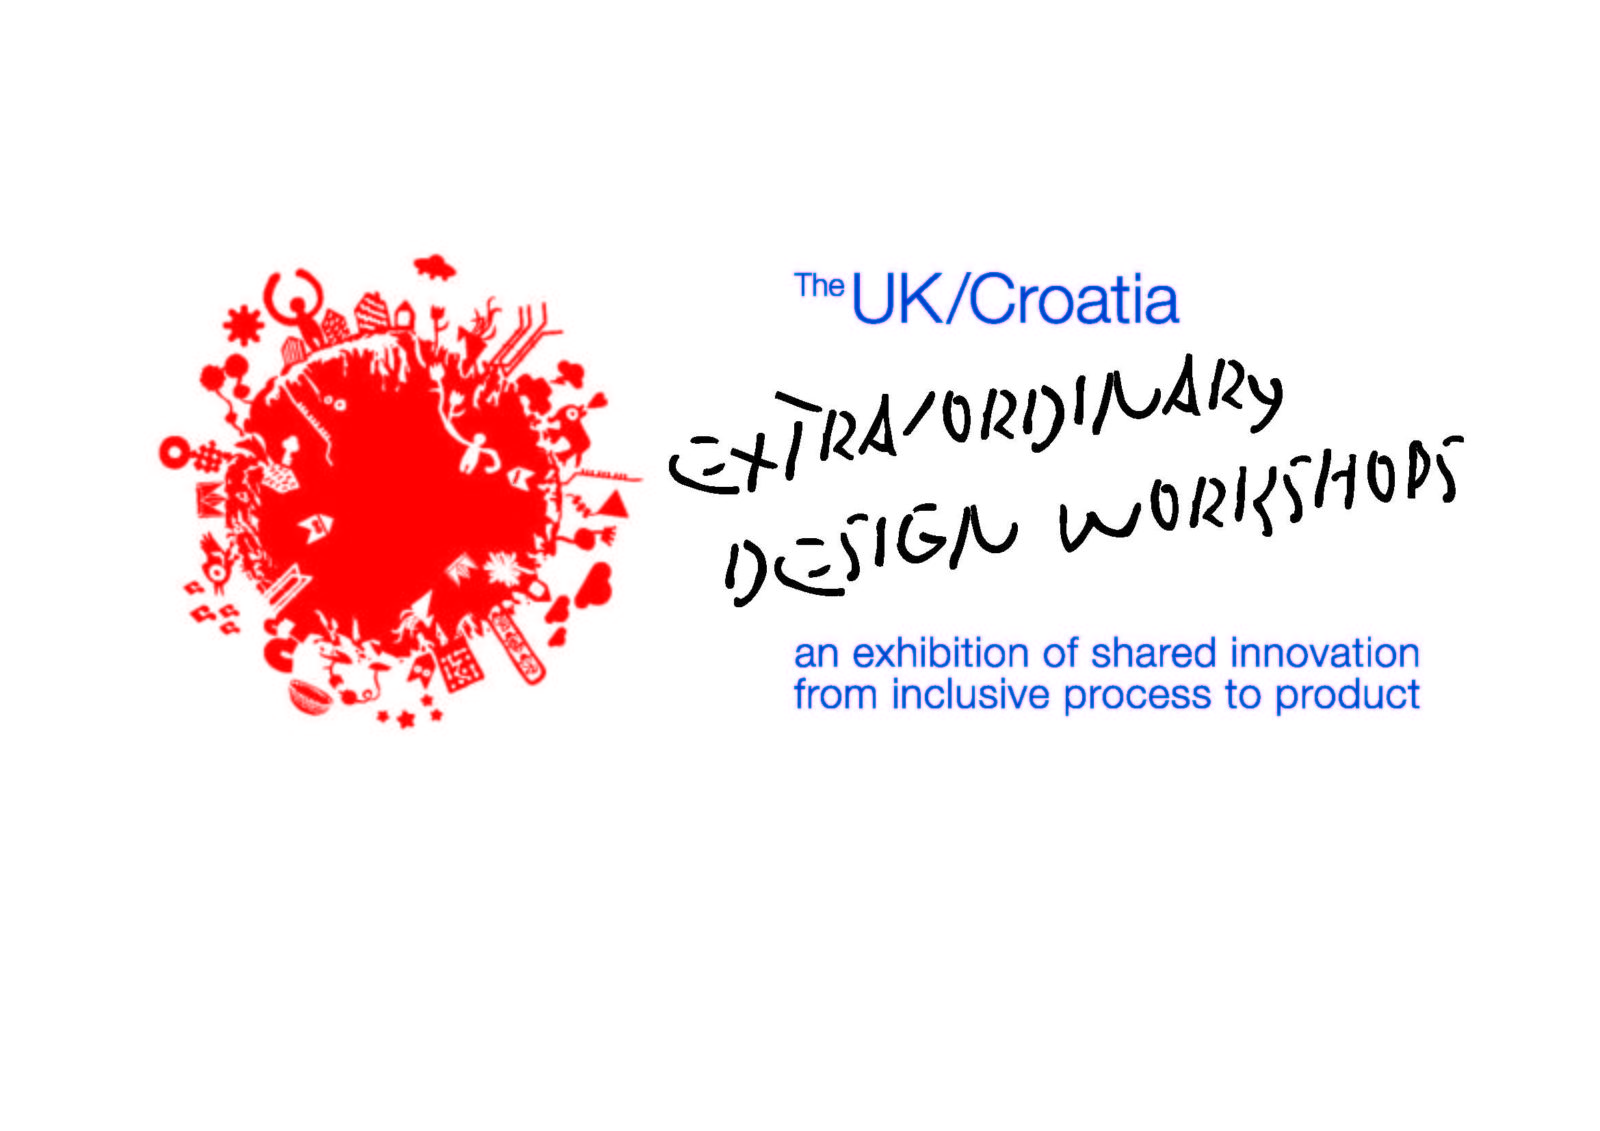 Extra / ordinary Design Workshops